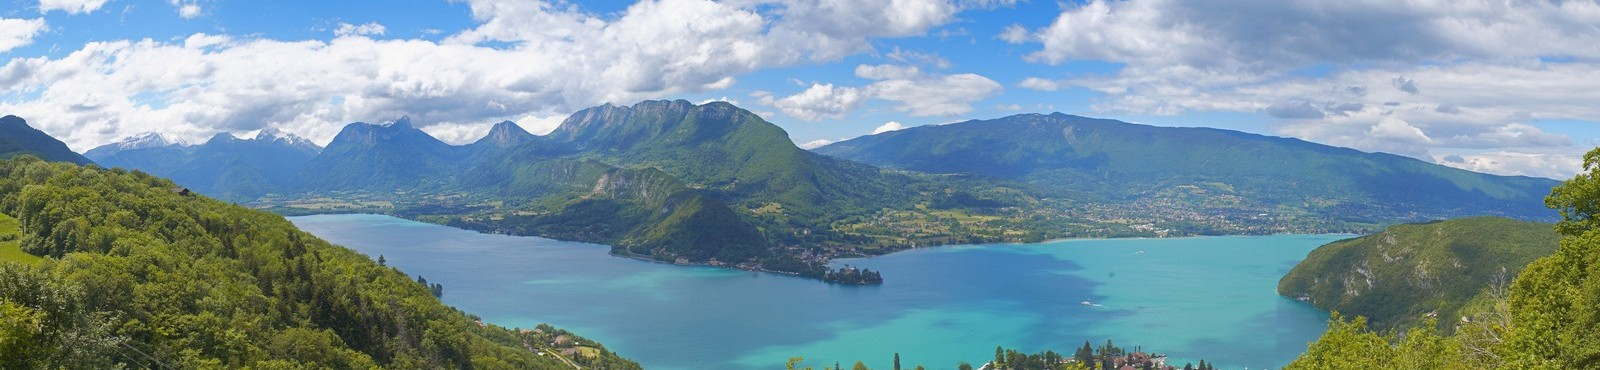 Annecy Lake Luxury tour